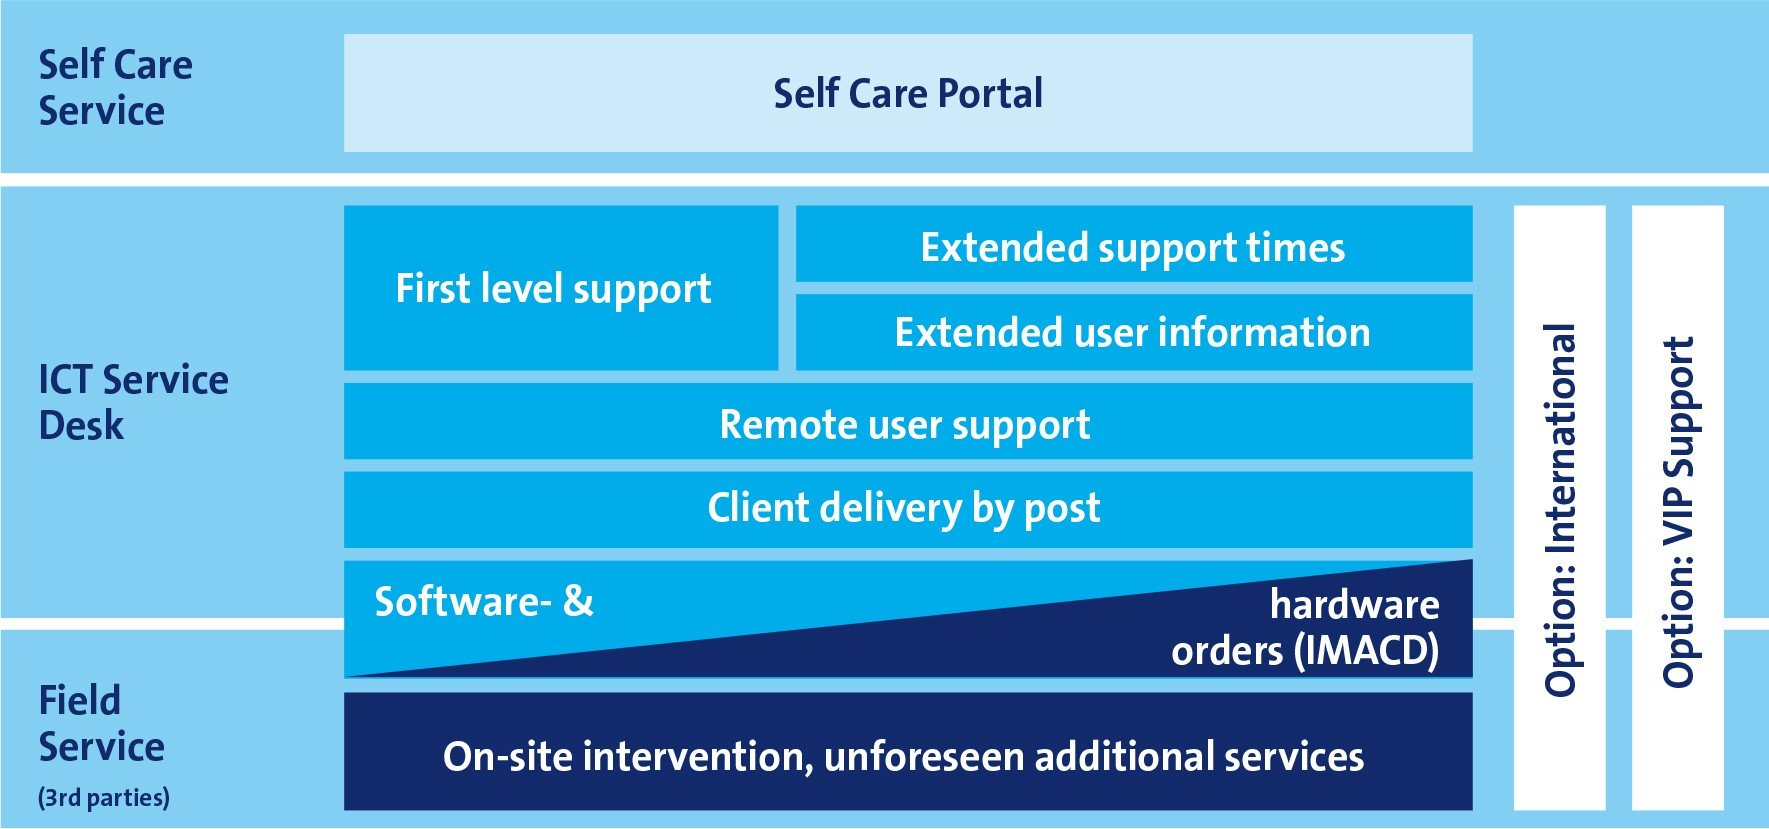 Swisscom S It Service Desk Takes Care Of Hard And Problems Supports Your Employees With Configuration Or Operating